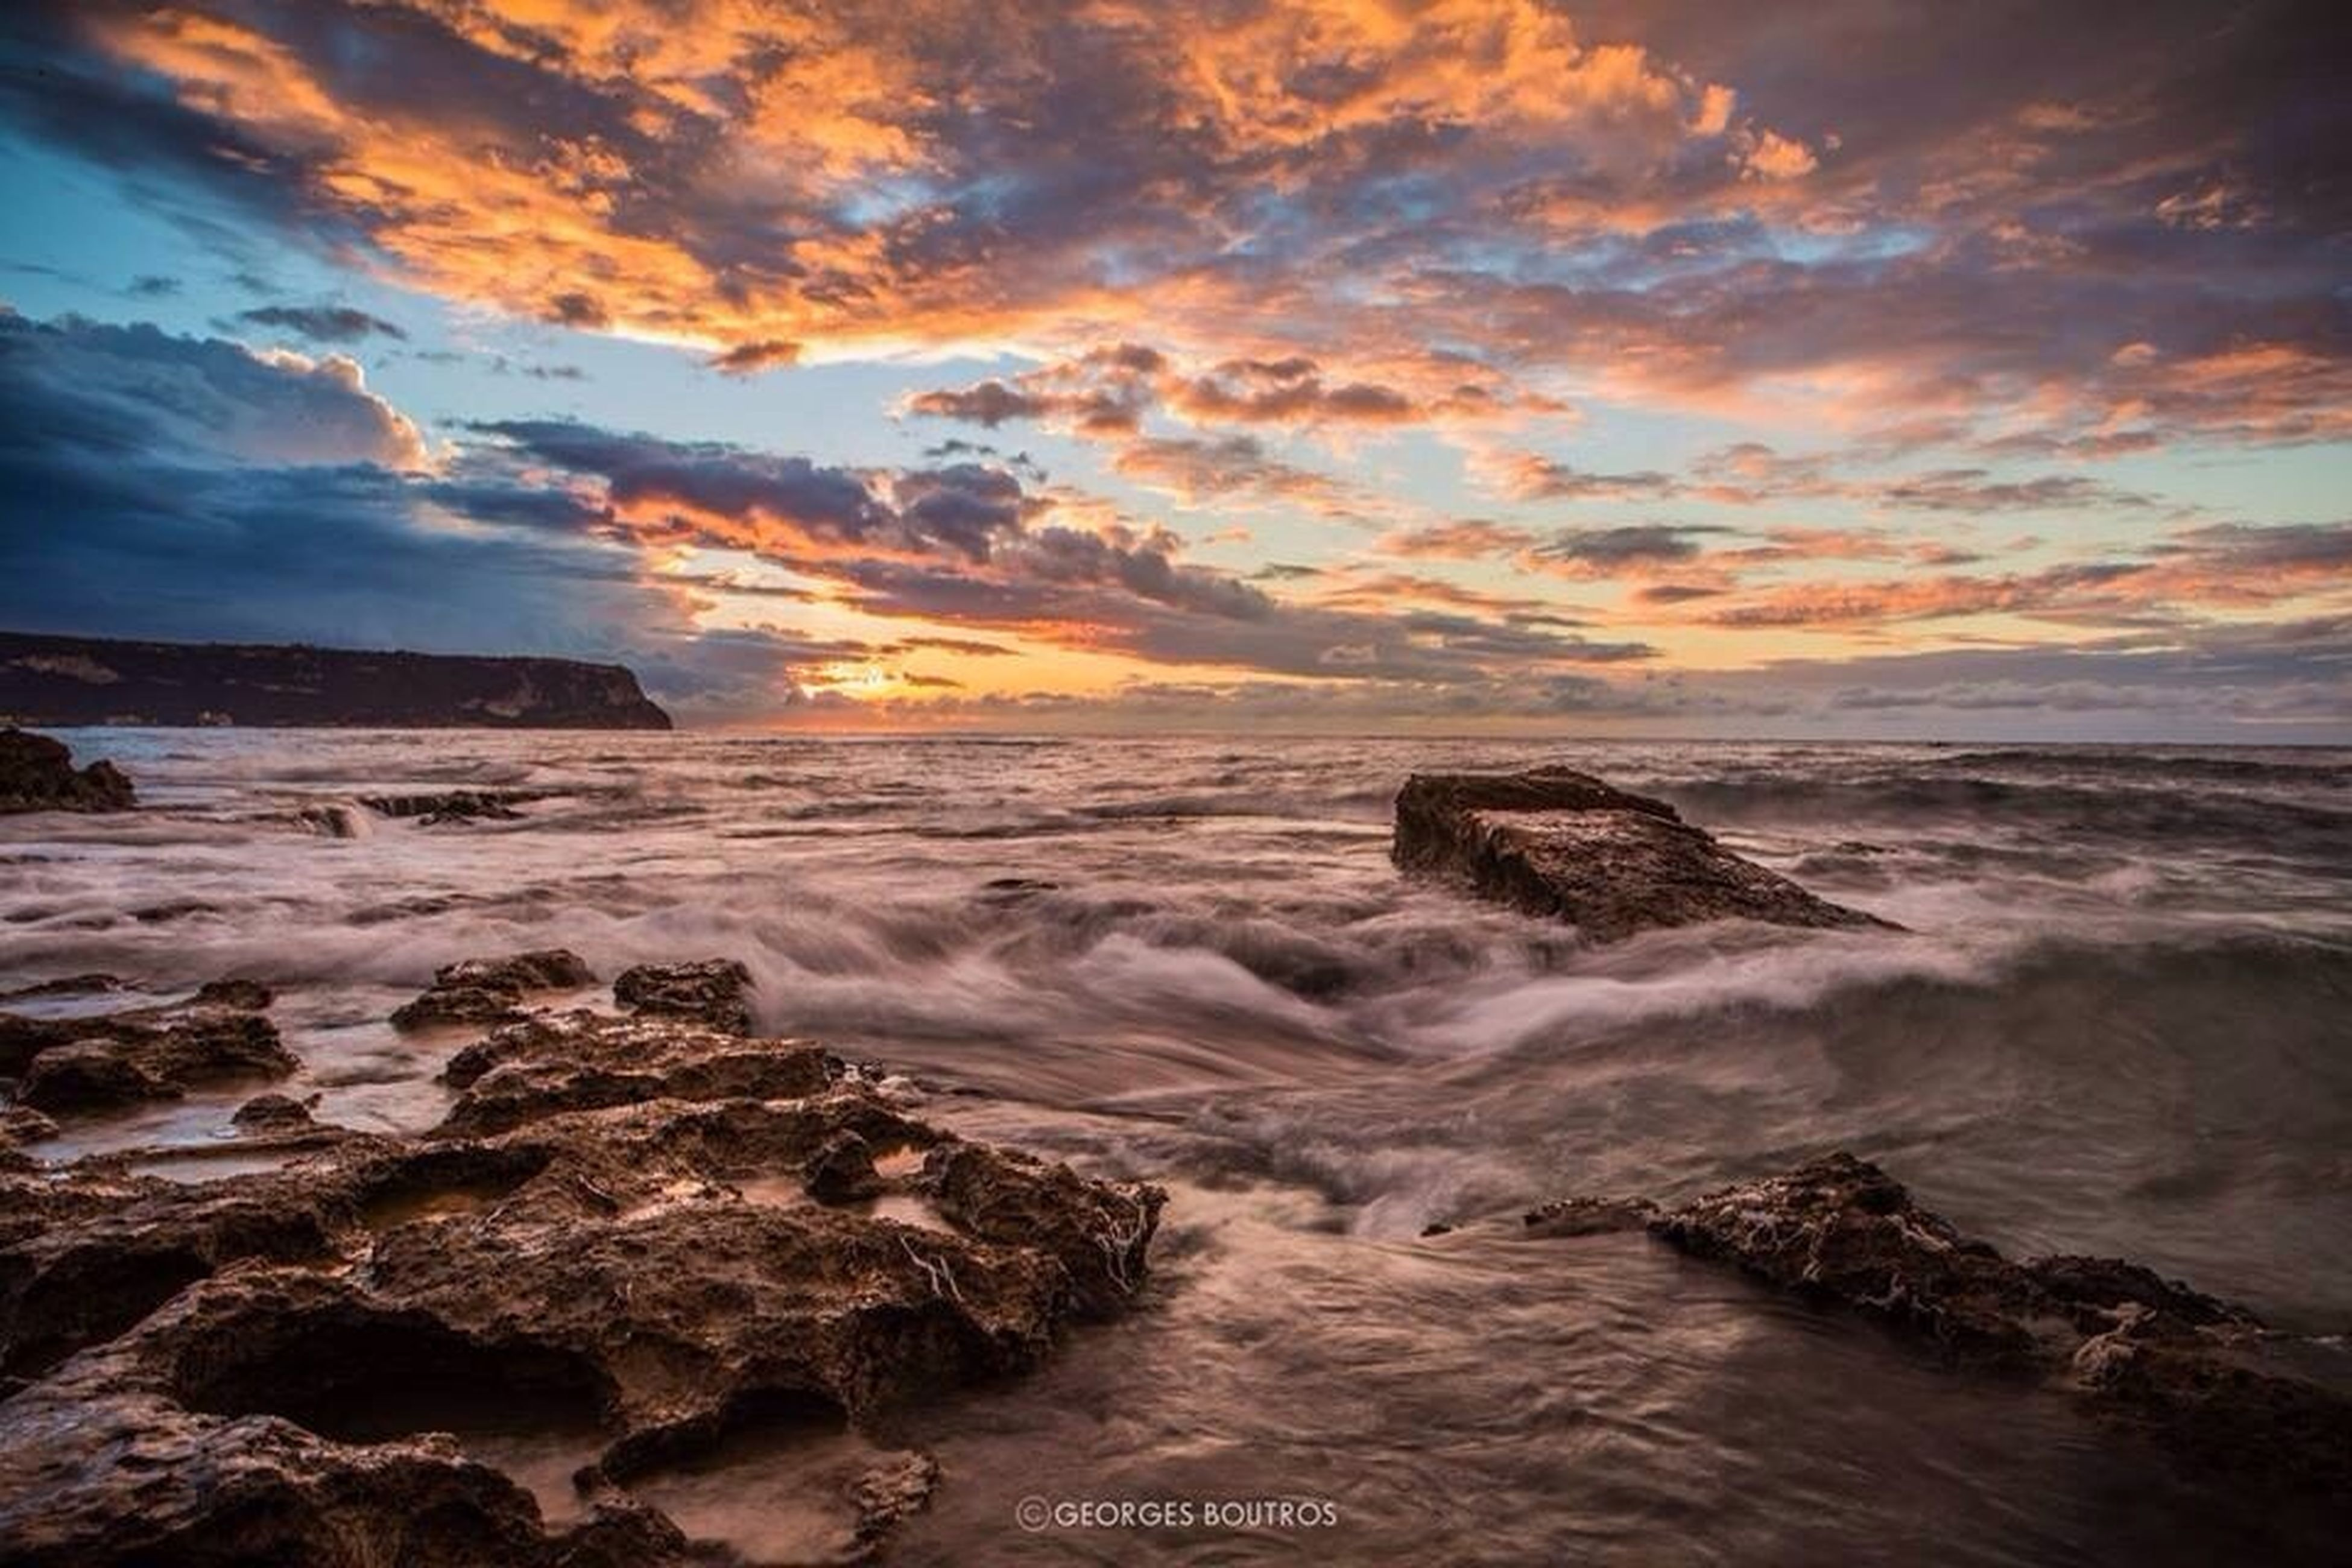 water, sea, sunset, sky, scenics, beauty in nature, tranquil scene, cloud - sky, horizon over water, rock - object, wave, nature, tranquility, idyllic, beach, surf, shore, dramatic sky, cloudy, rock formation